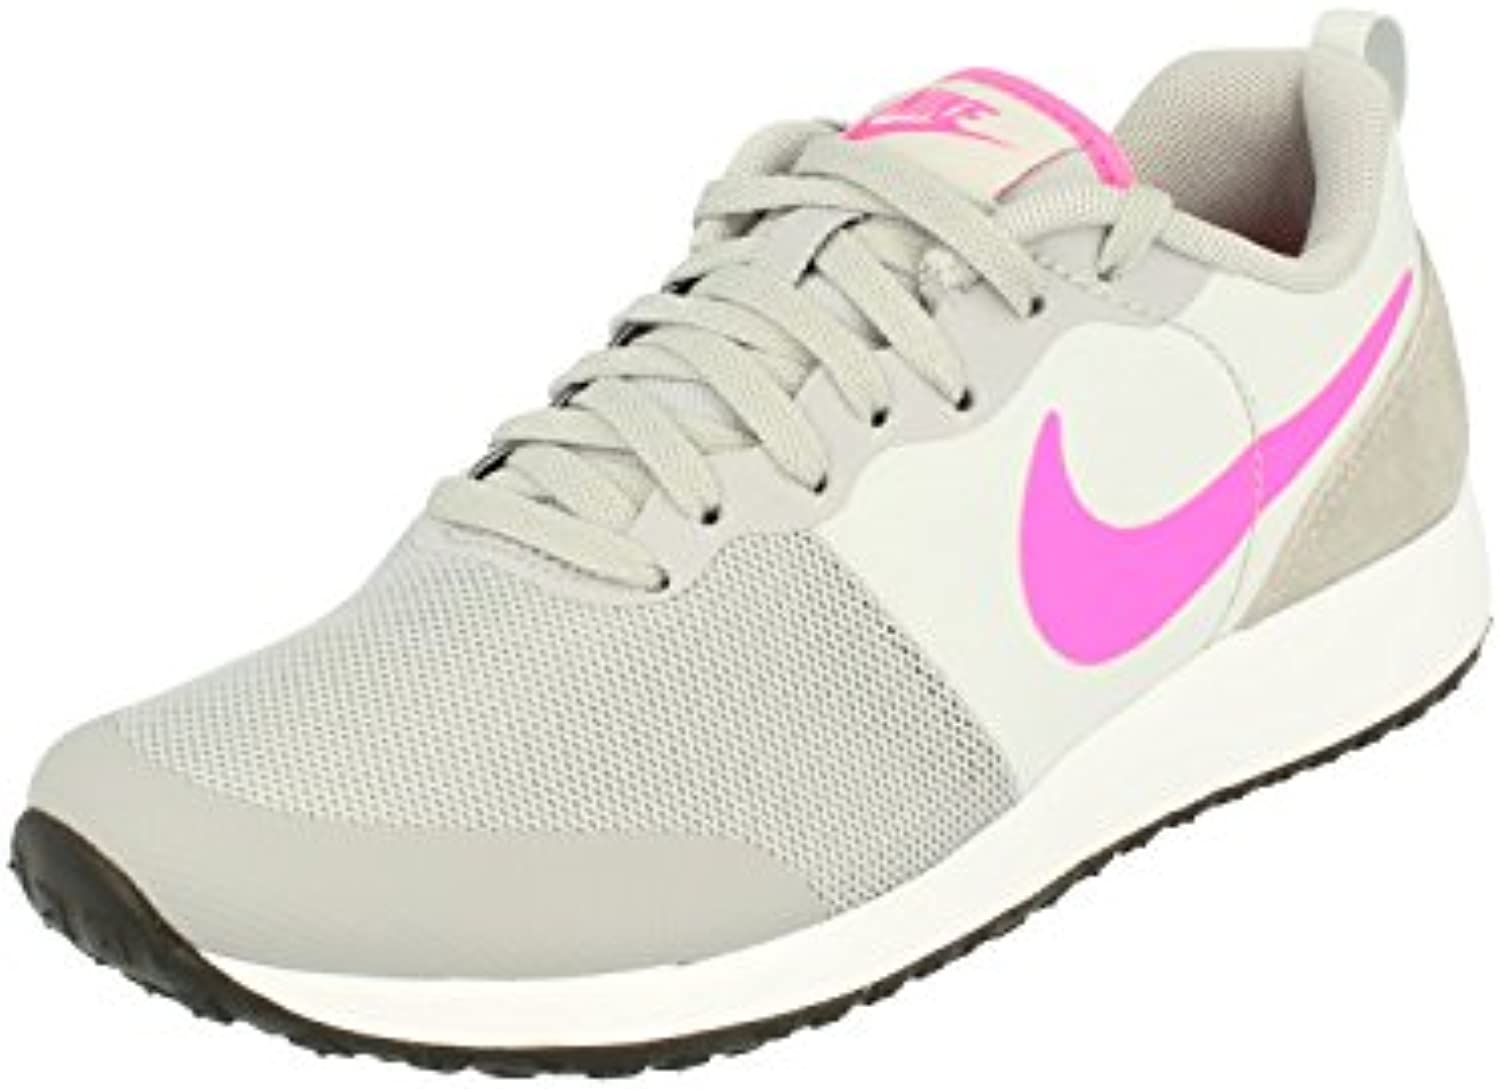 Nike Women's WMNS Elite Shinsen, Women's Nike Trainers B0073JW7W0 Parent b34447